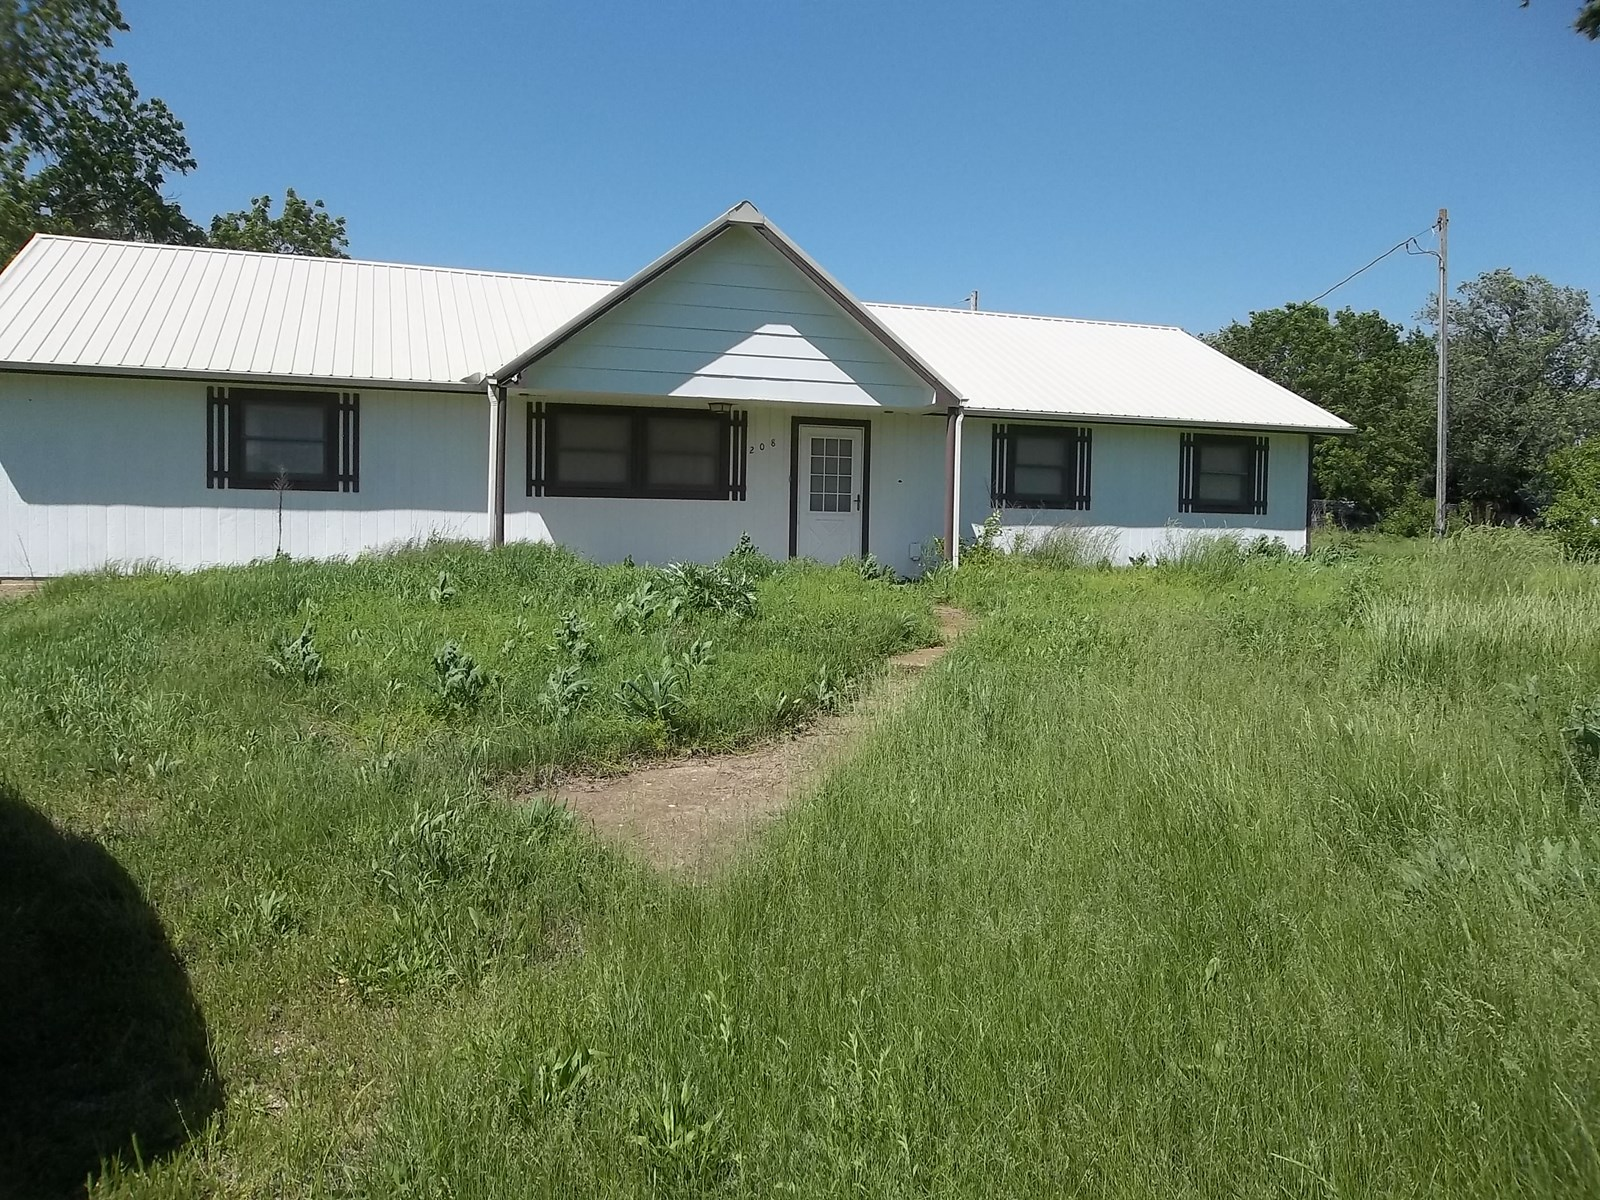 Home for sale in Buffalo, Kansas